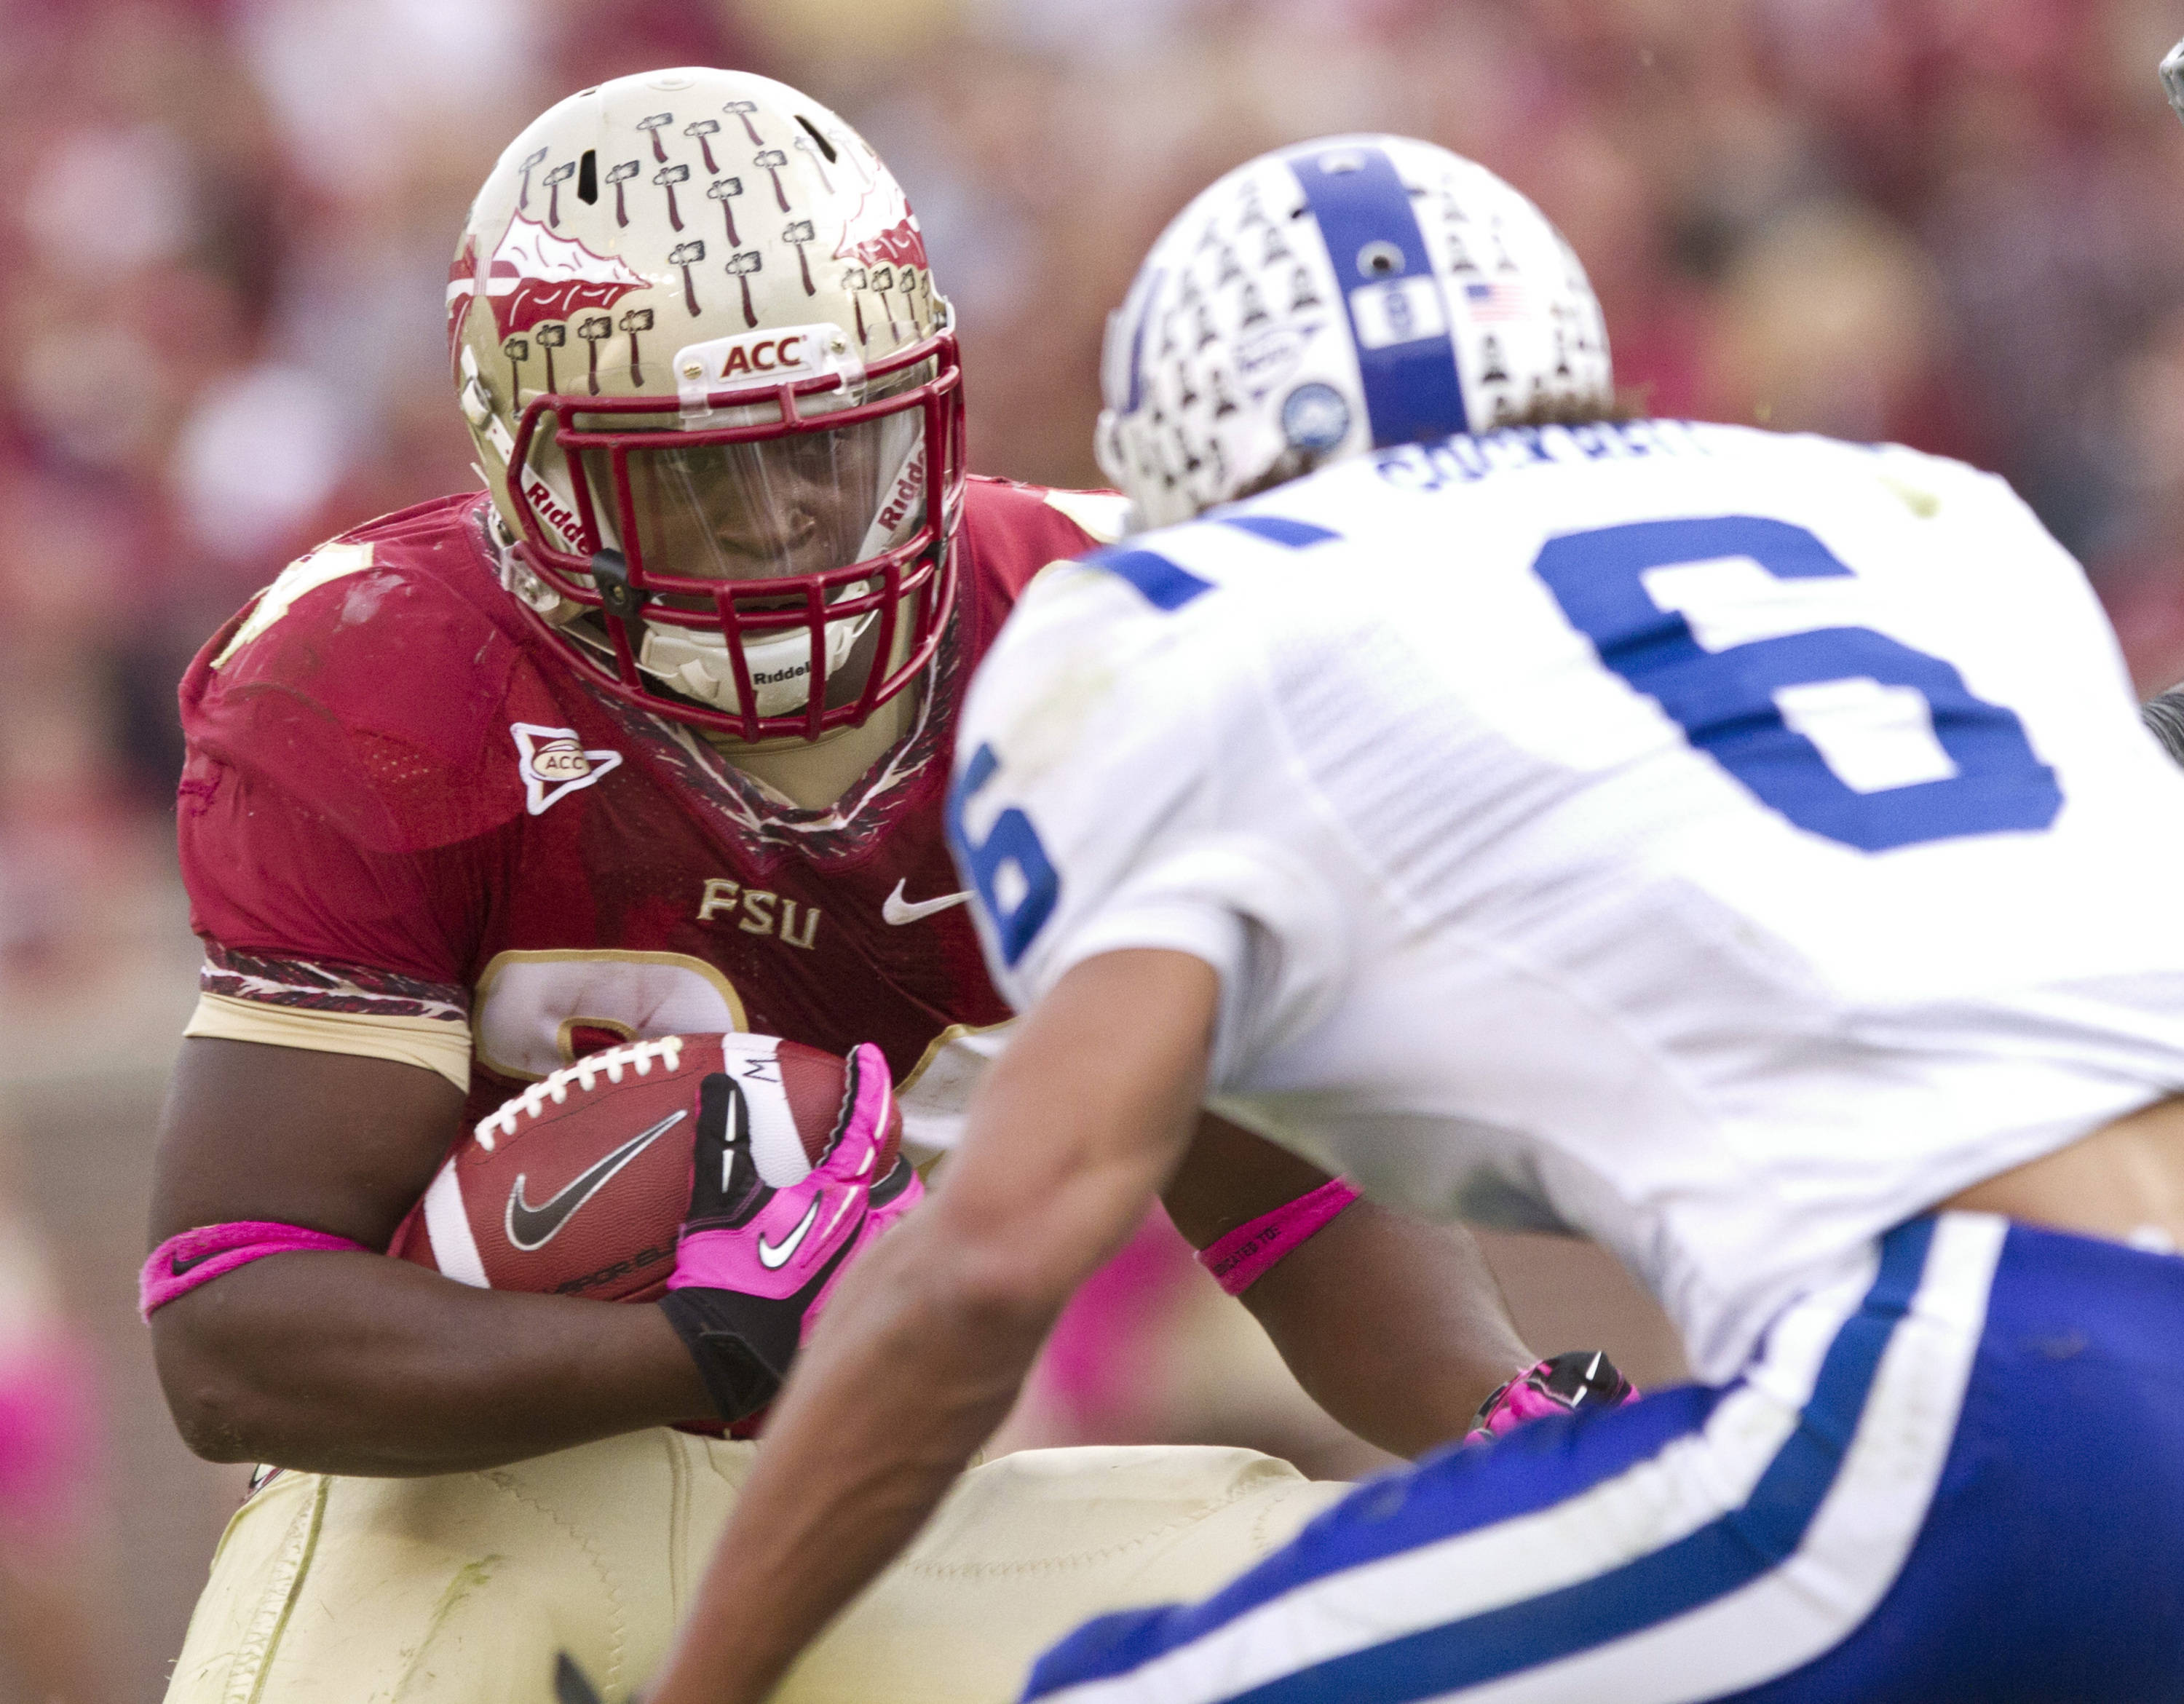 Lonnie Pryor (24) carries the ball during FSU's 48-7 victory over Duke on October 27, 2012 in Tallahassee, Fla.